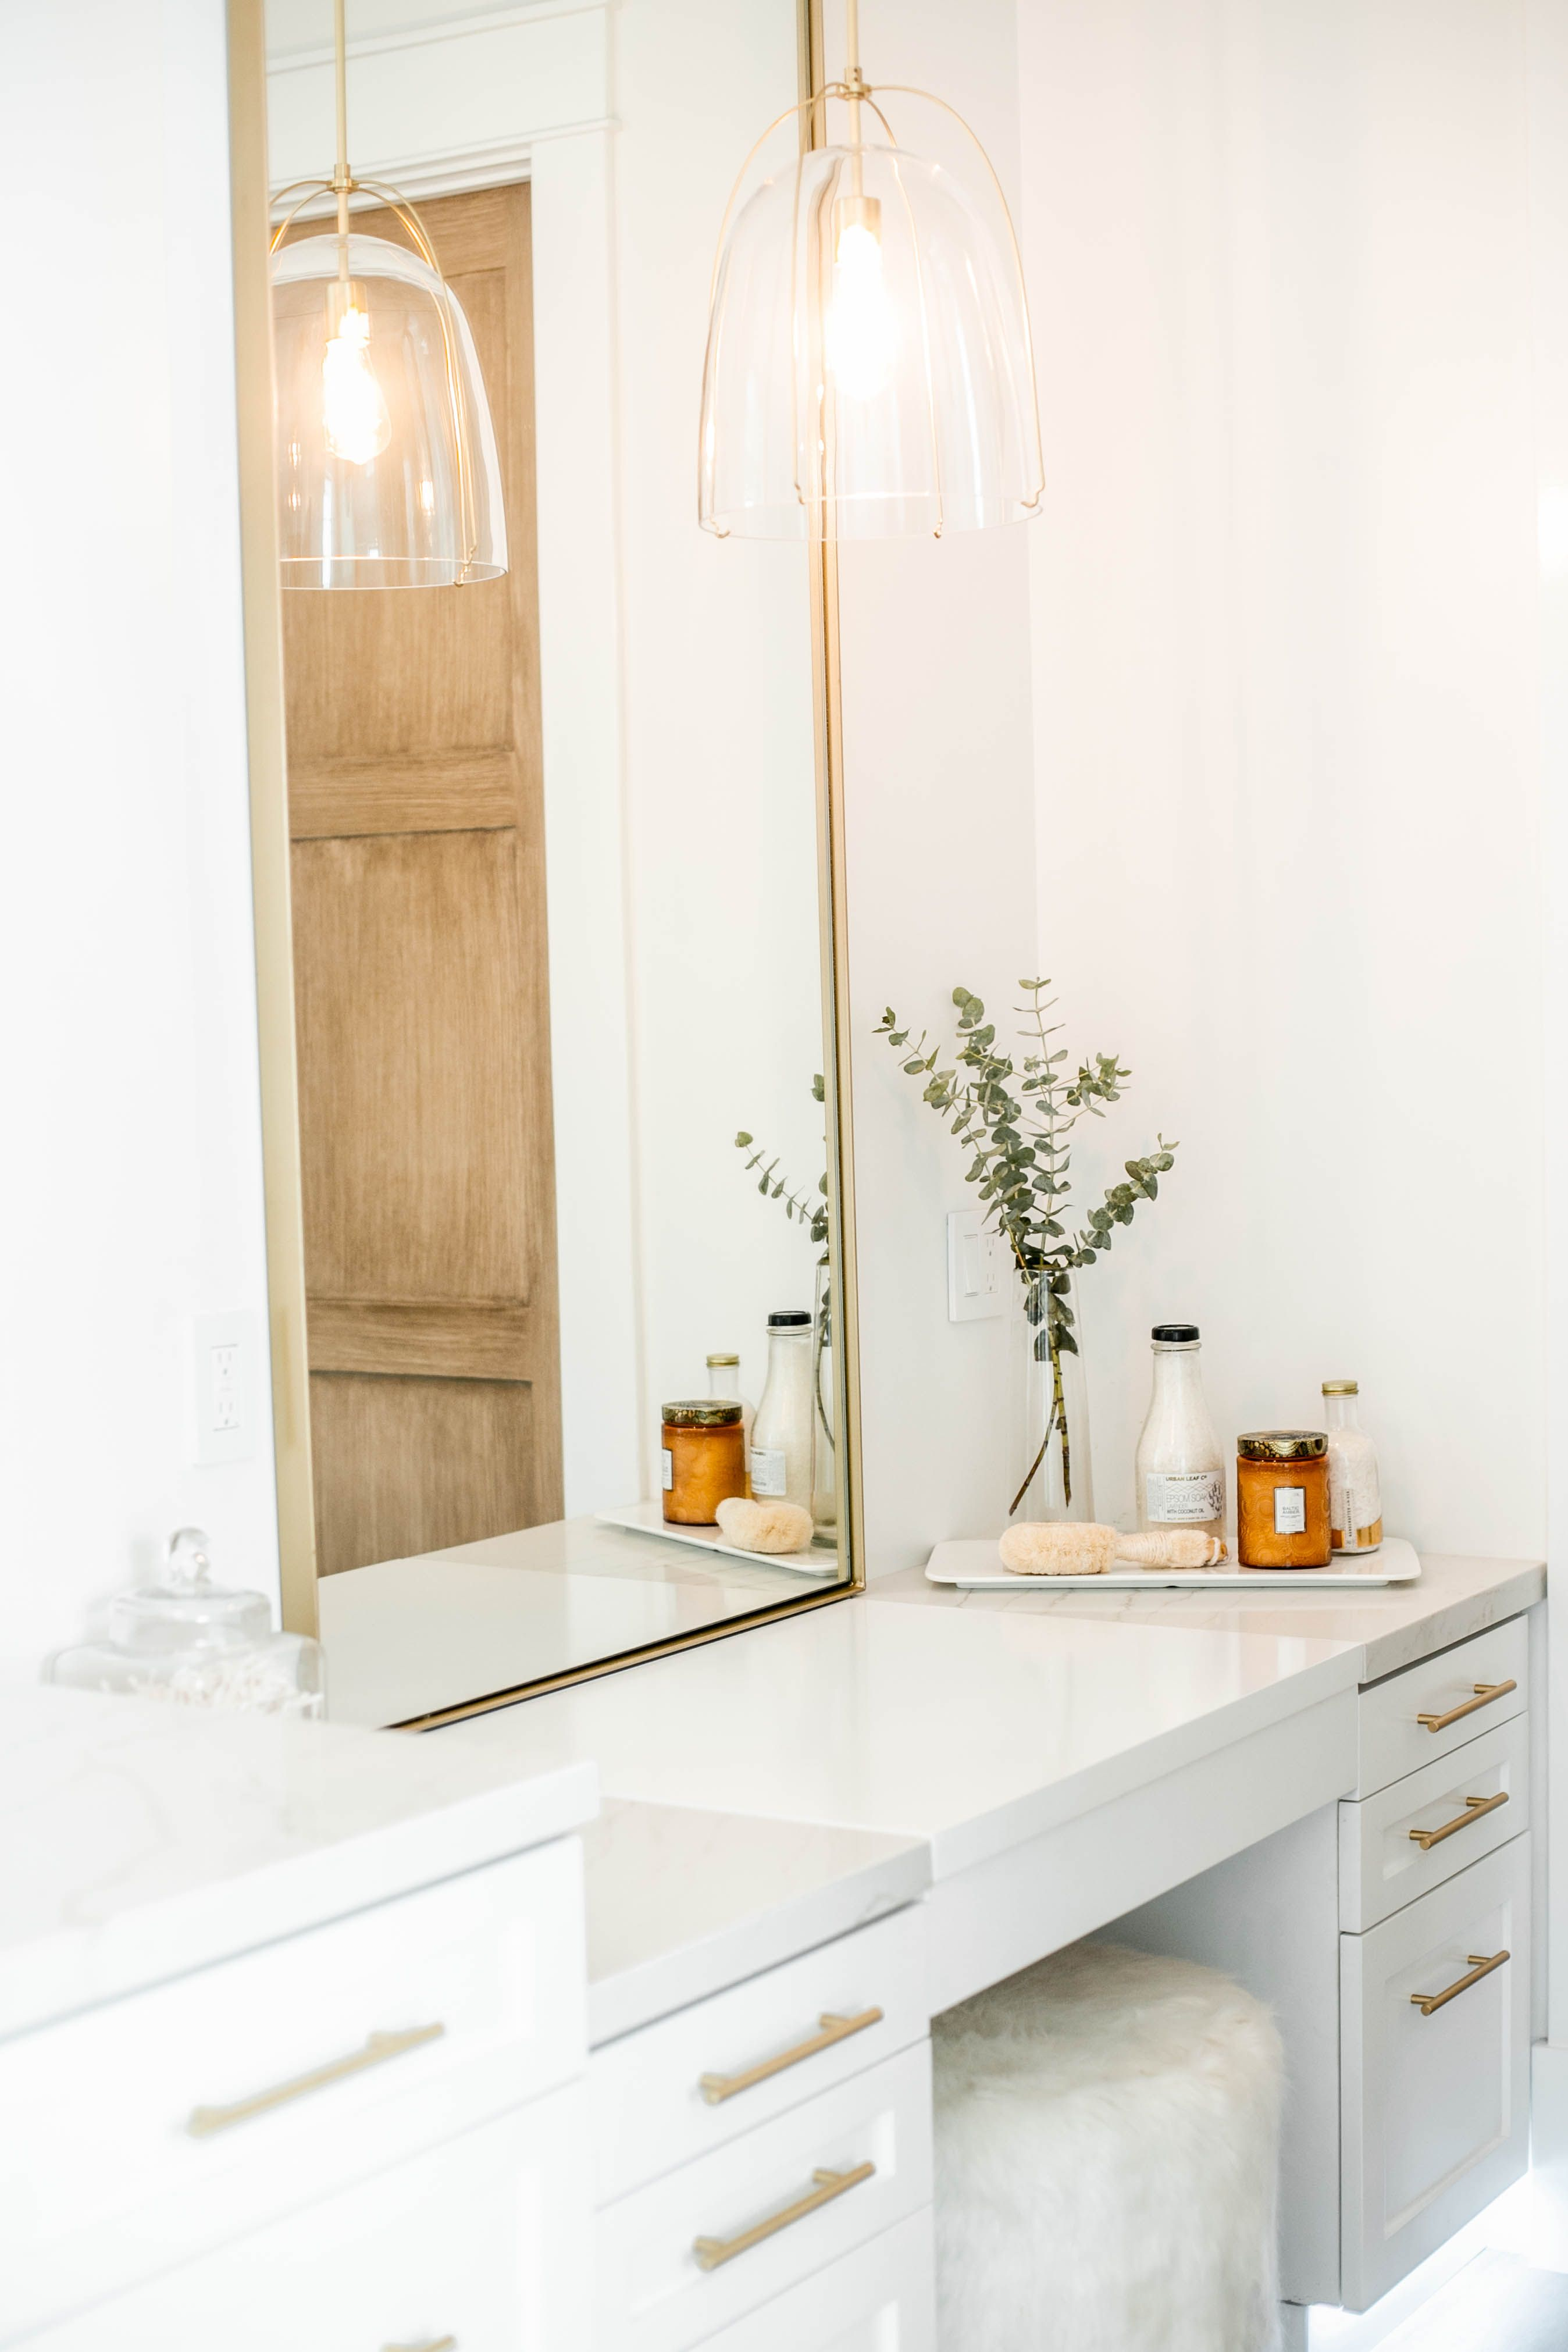 Modern White And Gold Makeup Vanity Bathroom Decor Design Styled Photographed By Bathroom Design Luxury White Bathroom Accessories Modern White Bathroom